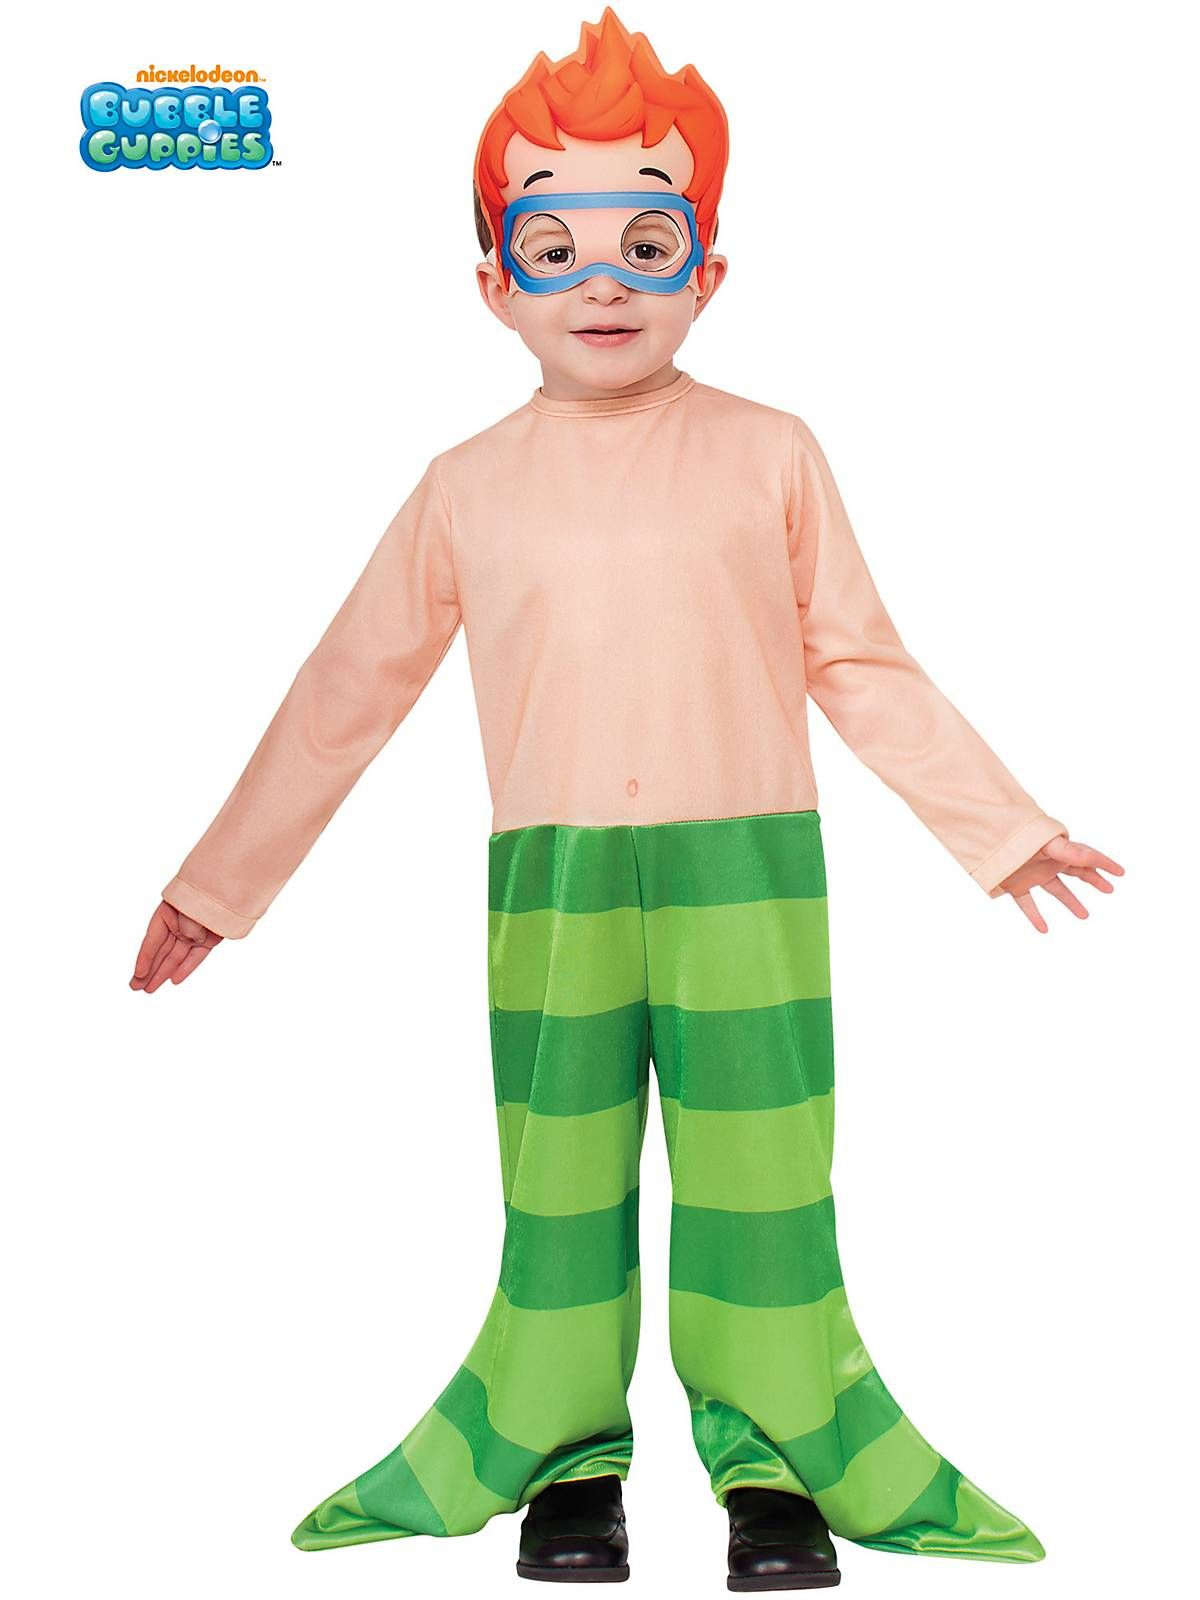 Bubble guppies character rental - Toddler Bubble Guppies Nonny Costume Wholesale Cartoon Characters Costumes For Babies Infants Toddlers